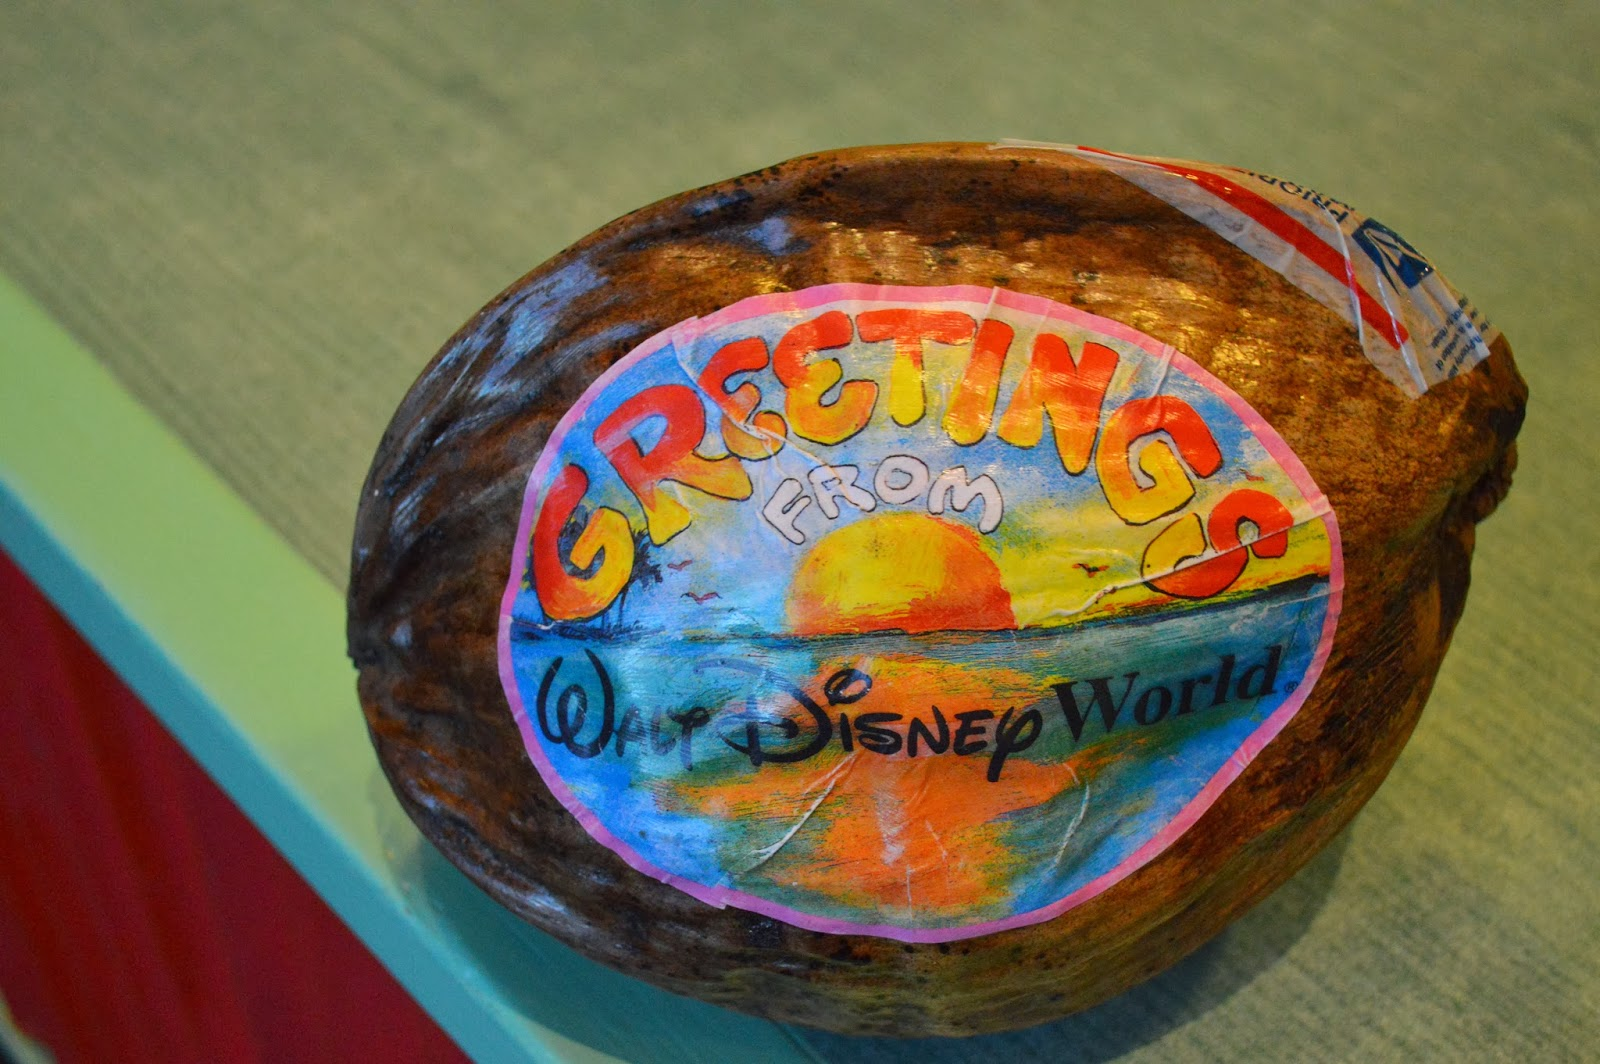 mail-a-coconut-from-Disney-world